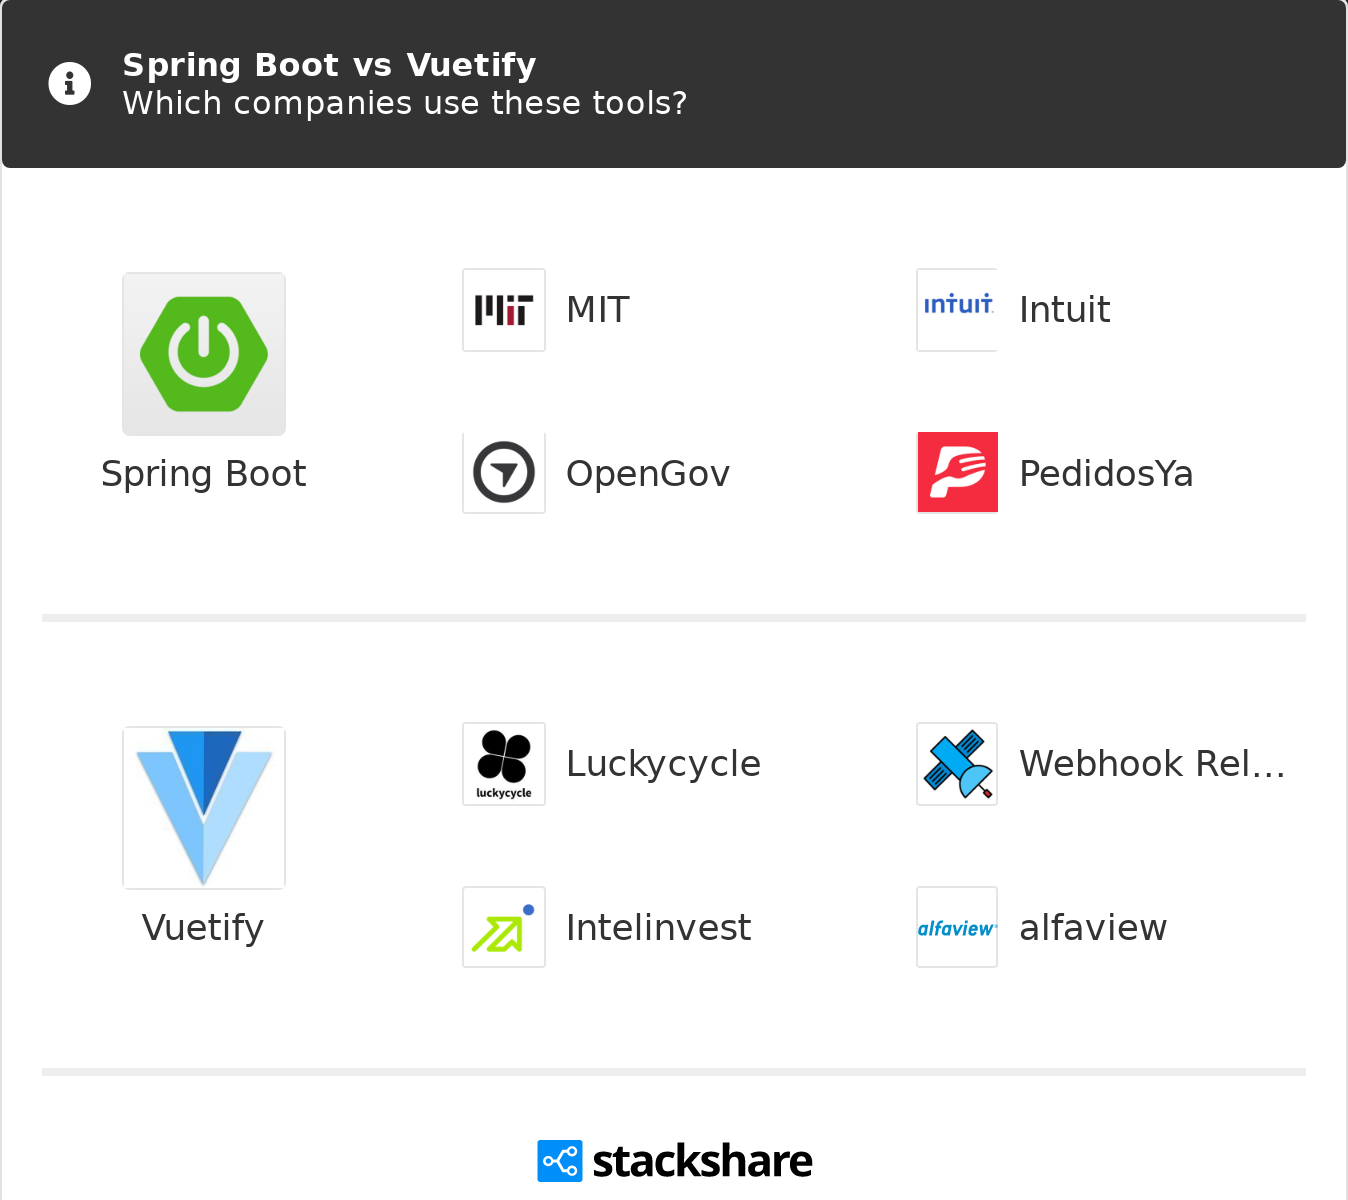 Spring Boot vs Vuetify   What are the differences?